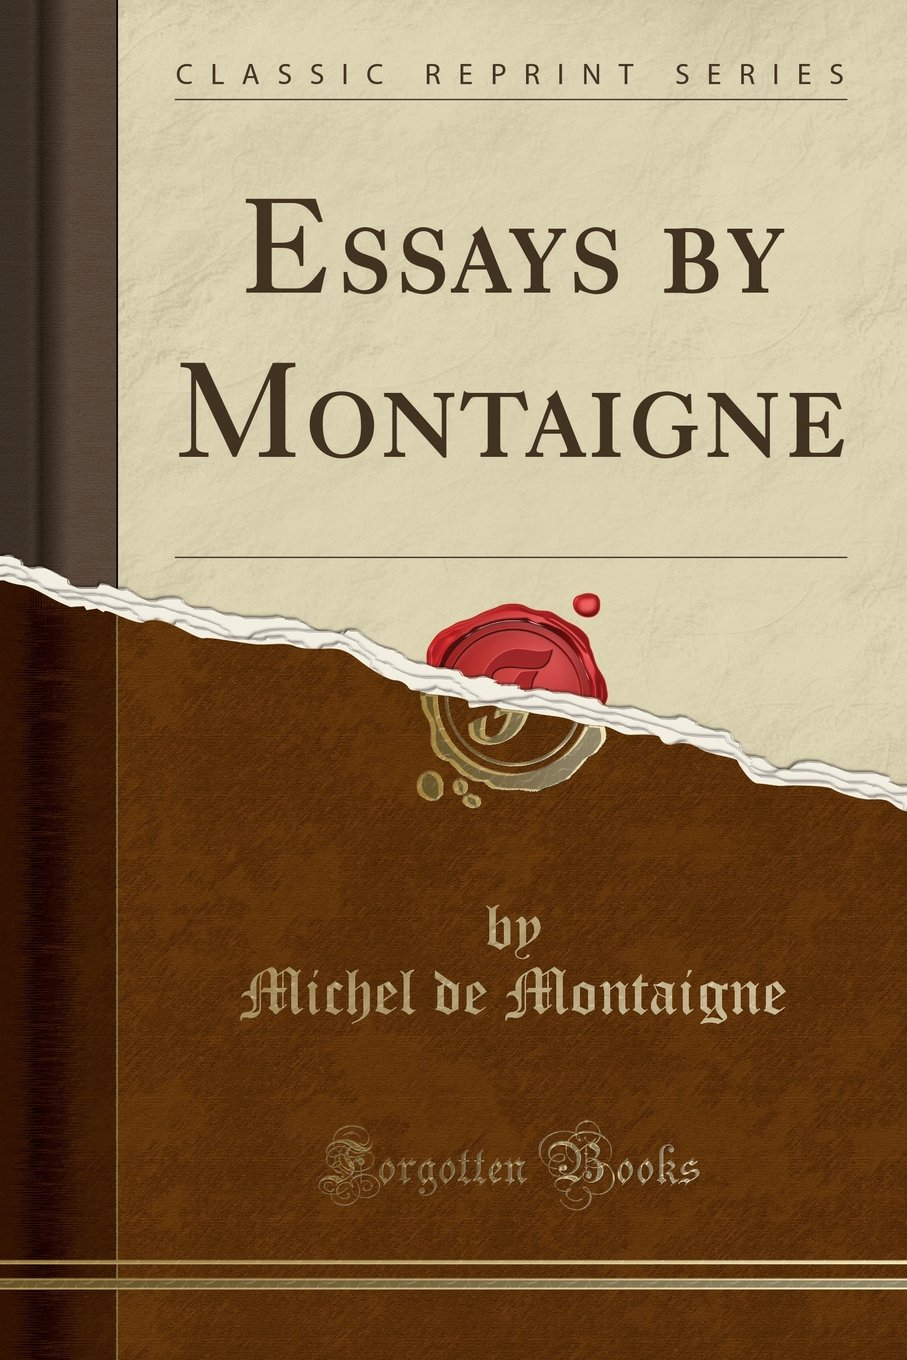 025 Montaigne Essays 715ojuza7al Essay Archaicawful Summary On Experience Quotes Best Translation Full